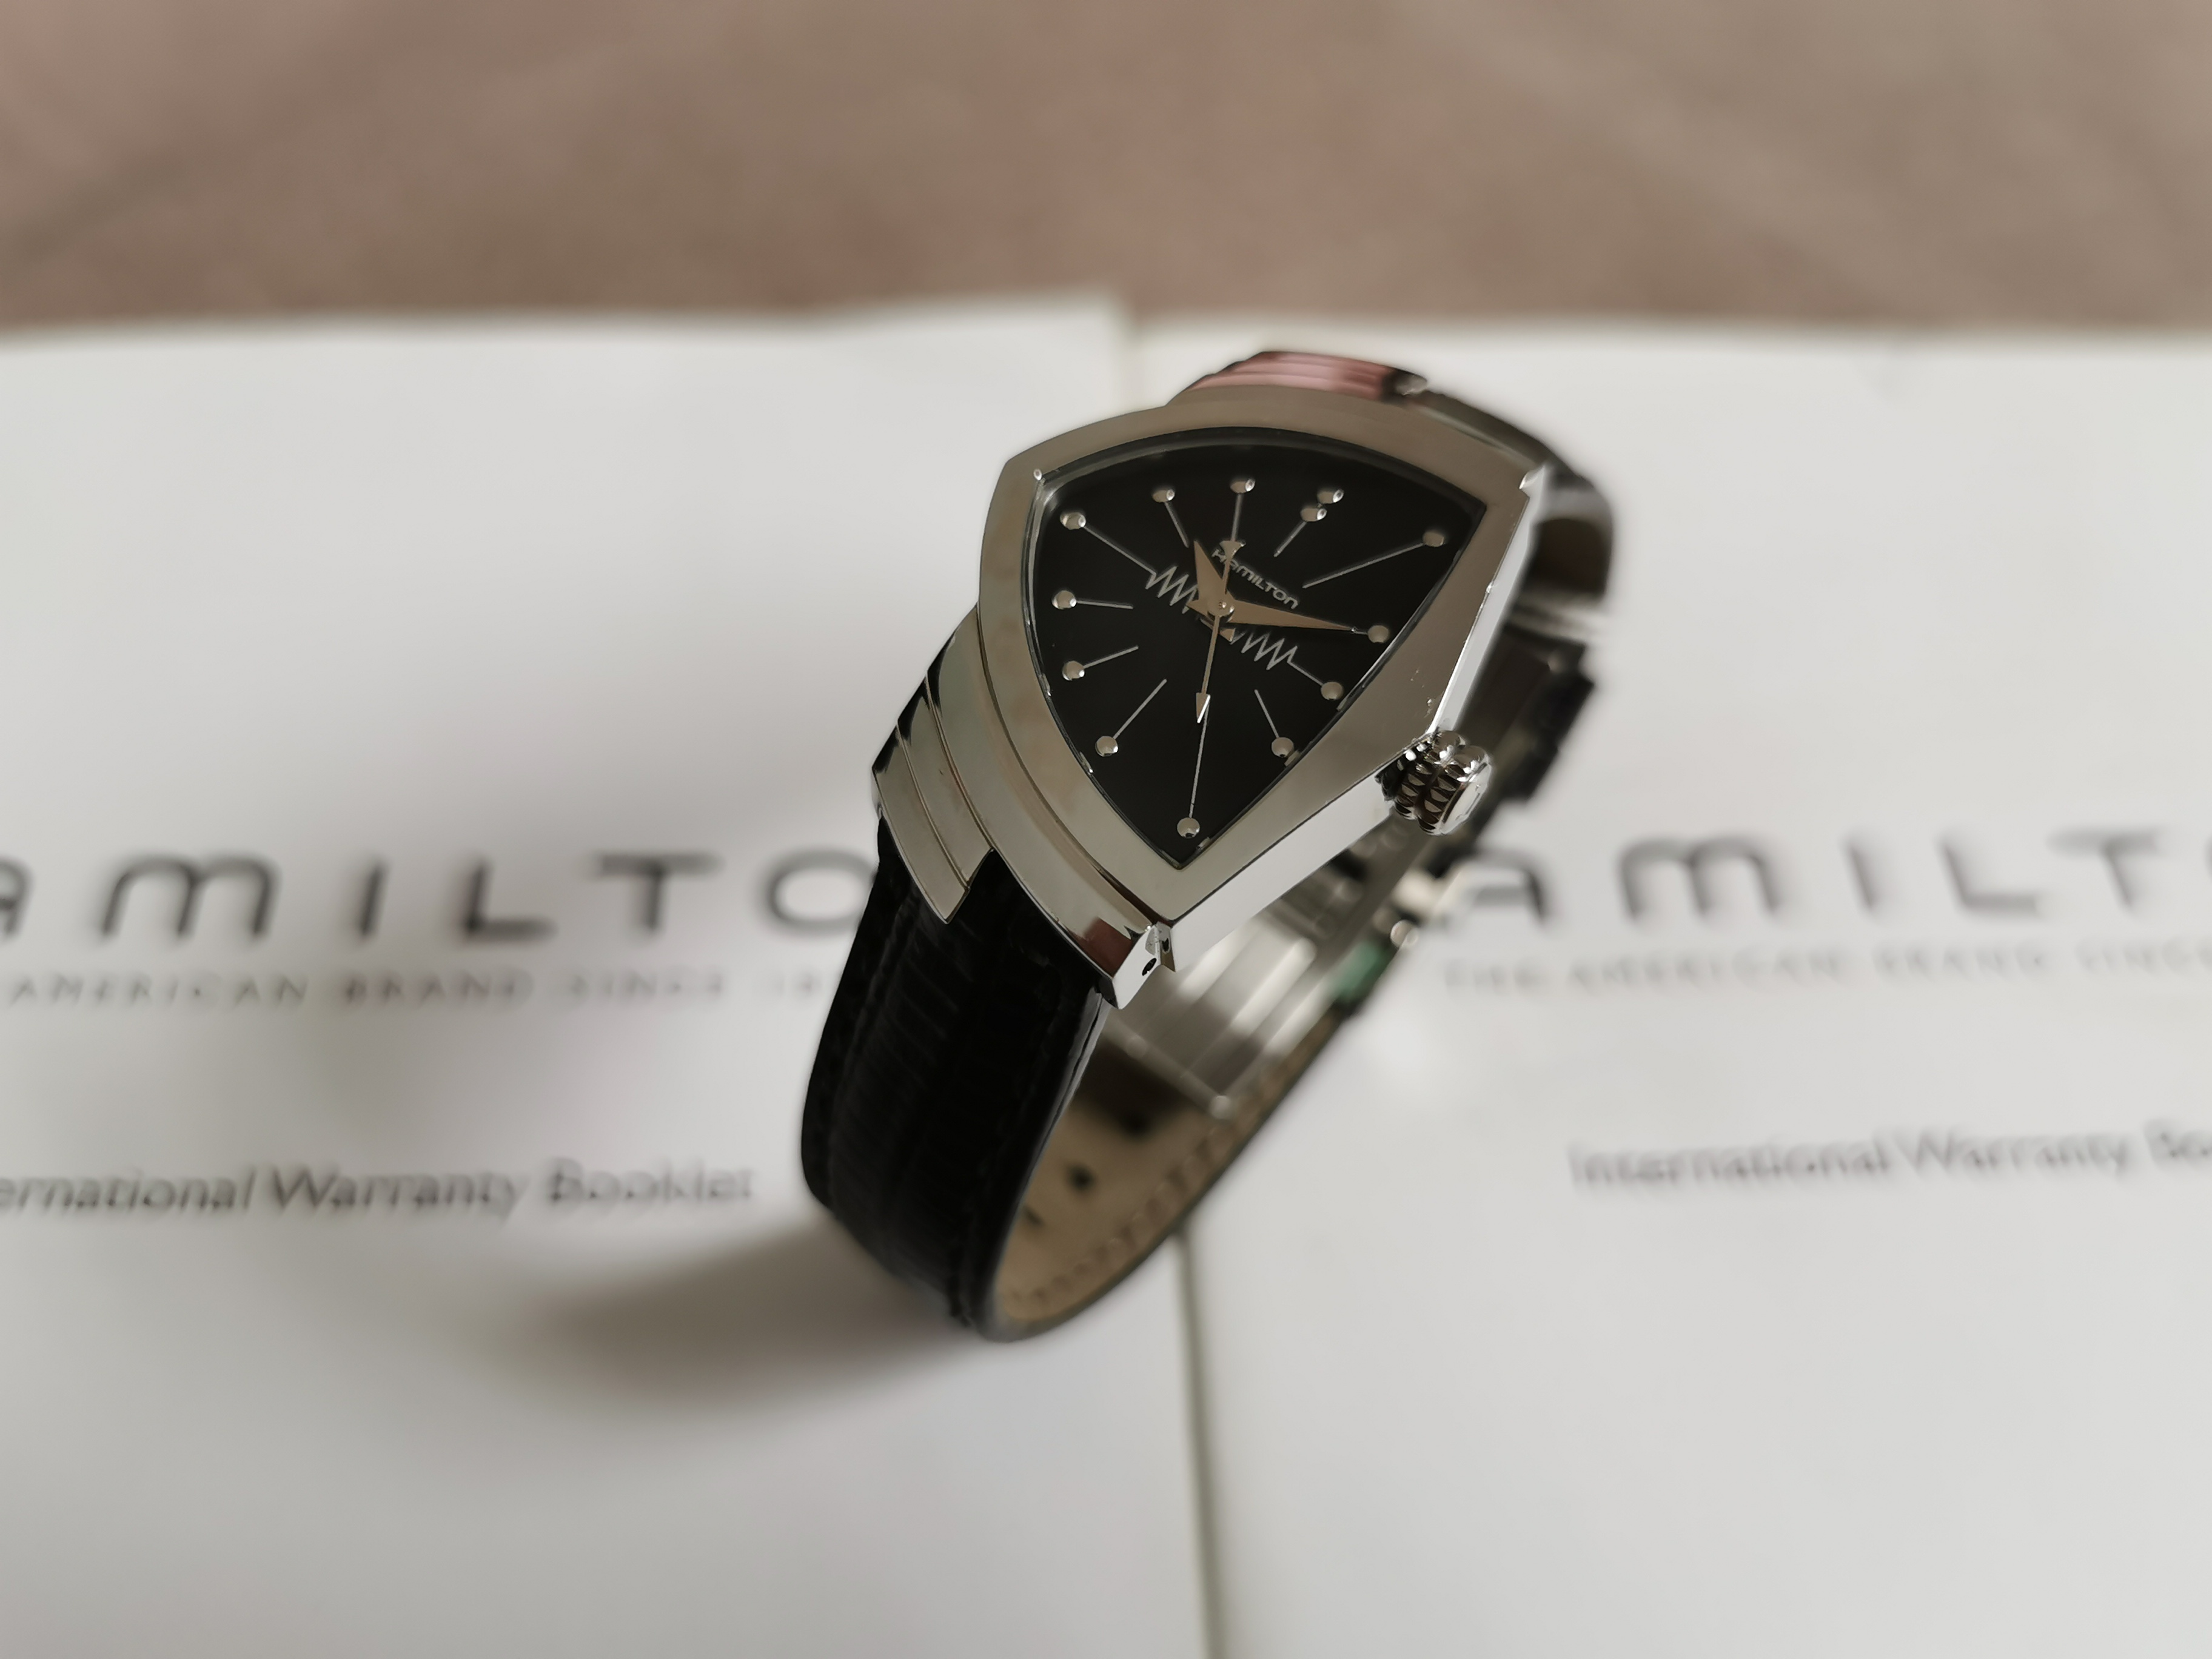 Hamilton Ventura Ventura Quartz Black Dial Stainless Steel Ladies Watch - H24211732 Like New | San Giorgio a Cremano